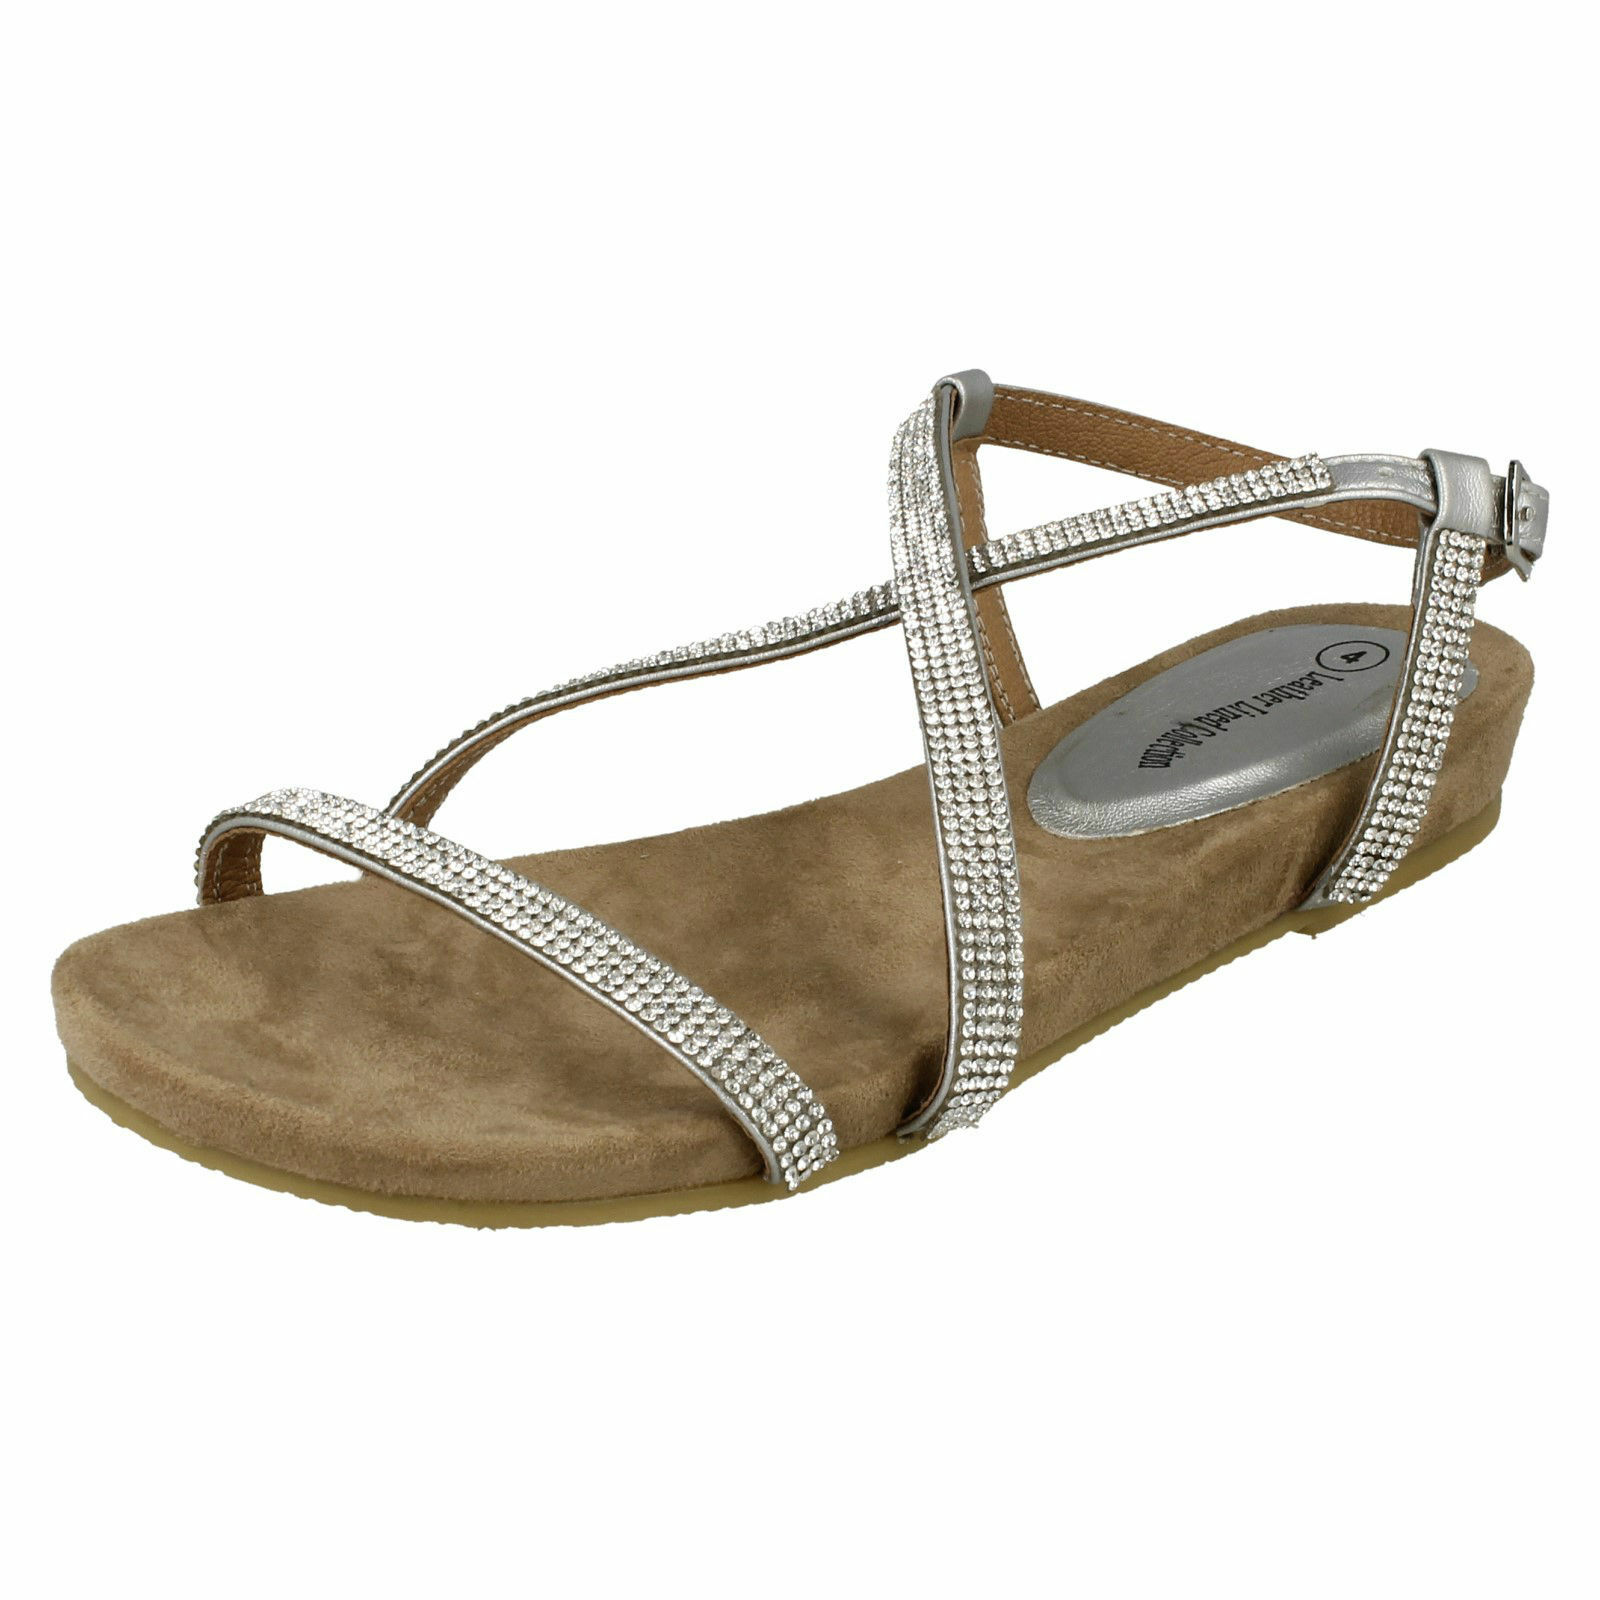 F0979- Ladies Silver Leather Lined Sandals Collection Diamante X Strap Sandals Lined a150e4